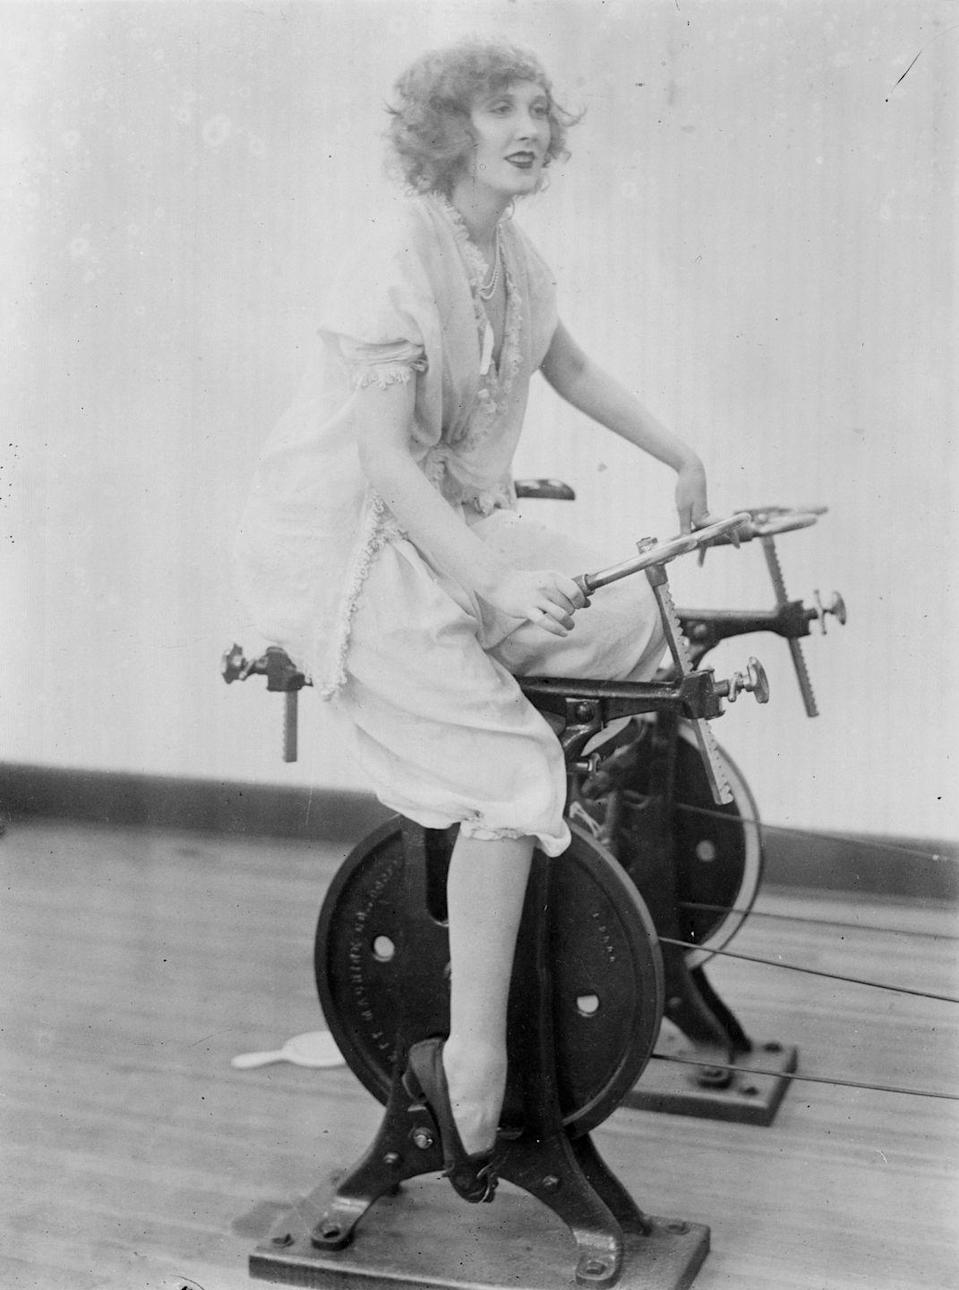 "<p>Here's proof that cycling has been popular for a very long time: This is a photo from March 1921 featuring a woman on a stationary bike. Her outfit might look odd now, but back then, it was pretty <a href=""https://thevintagewomanmagazine.com/history-of-exercise-fashion/"" rel=""nofollow noopener"" target=""_blank"" data-ylk=""slk:standard"" class=""link rapid-noclick-resp"">standard</a> for women to wear outfits of ""leisure,"" and heels or loafers (Adidas sneakers weren't exactly a thing yet). <br></p>"